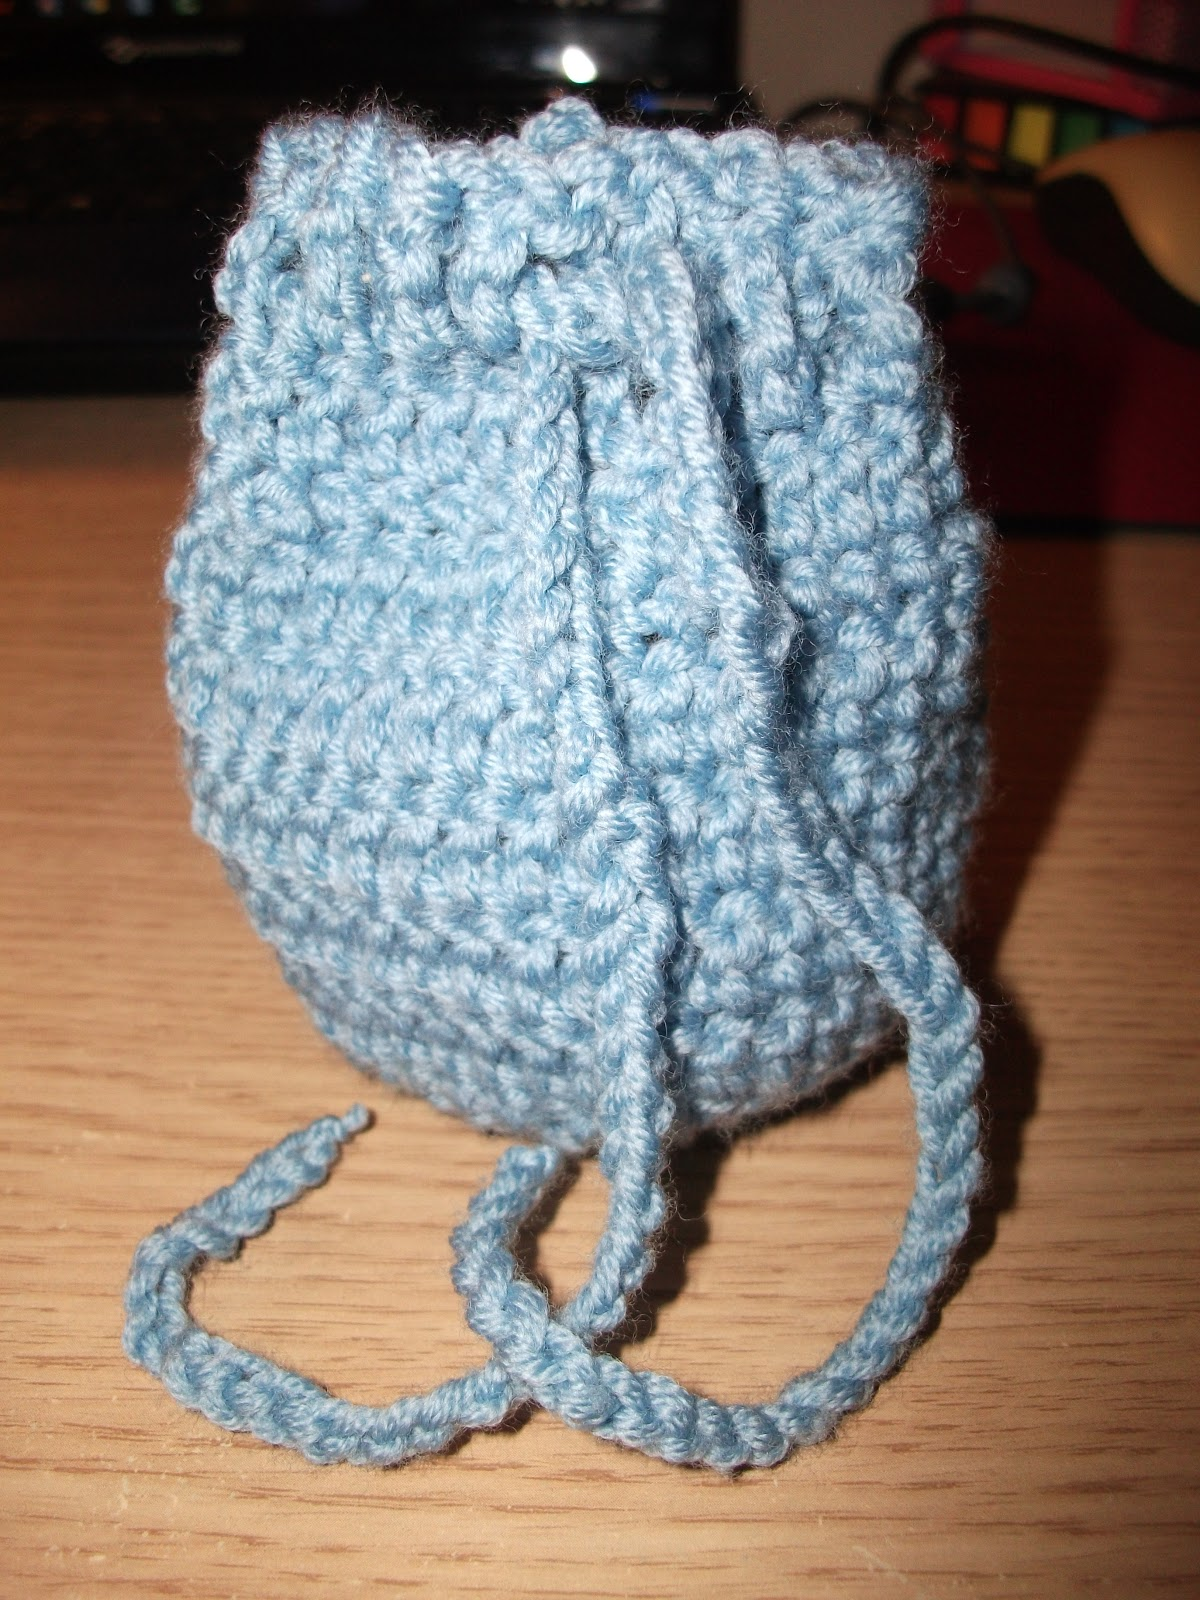 Crochet Pattern For Small Drawstring Bag